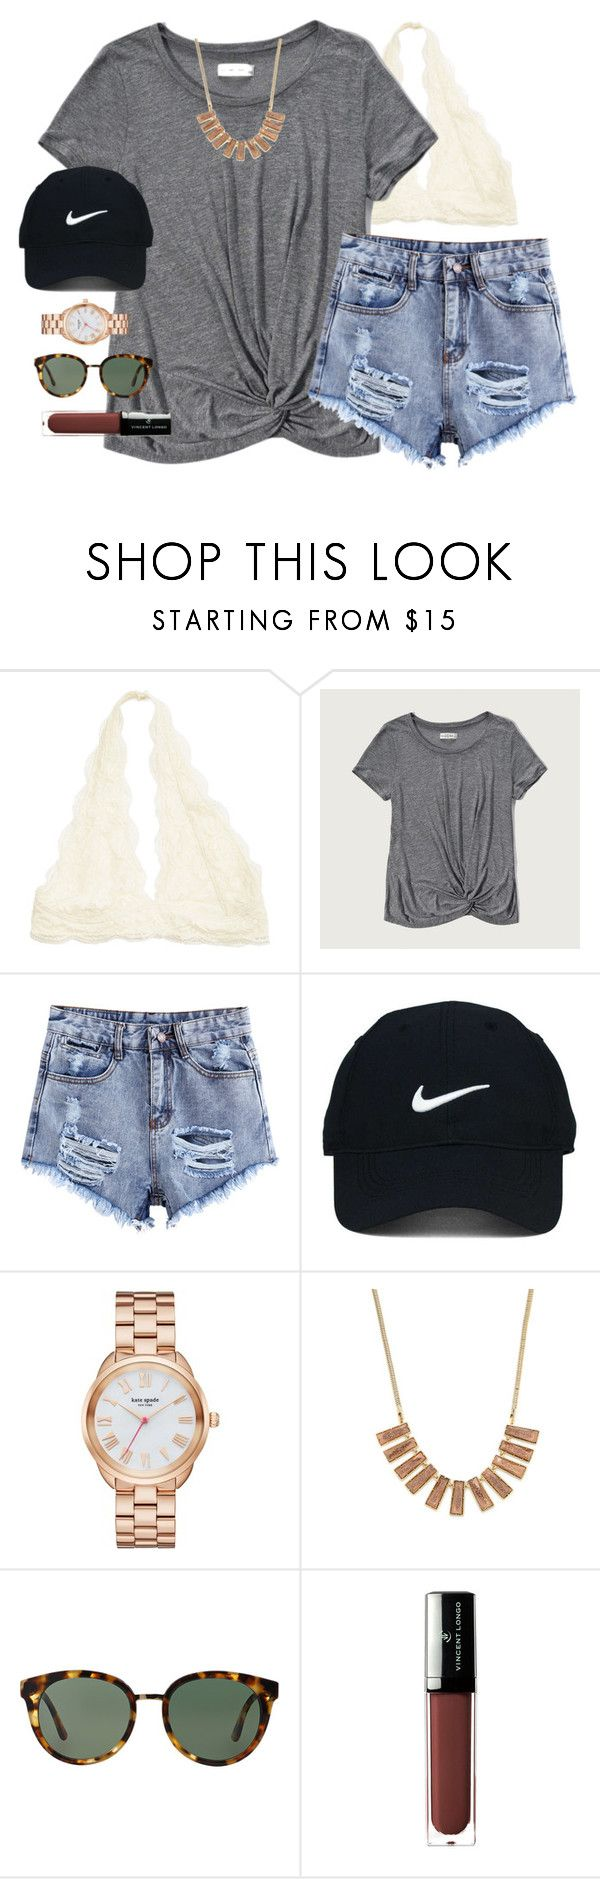 """cool for the summer"" by emmig02 ❤ liked on Polyvore featuring Abercrombie & Fitch, Nike Golf, Kate Spade, Kendra Scott, Tory Burch and Vincent Longo"